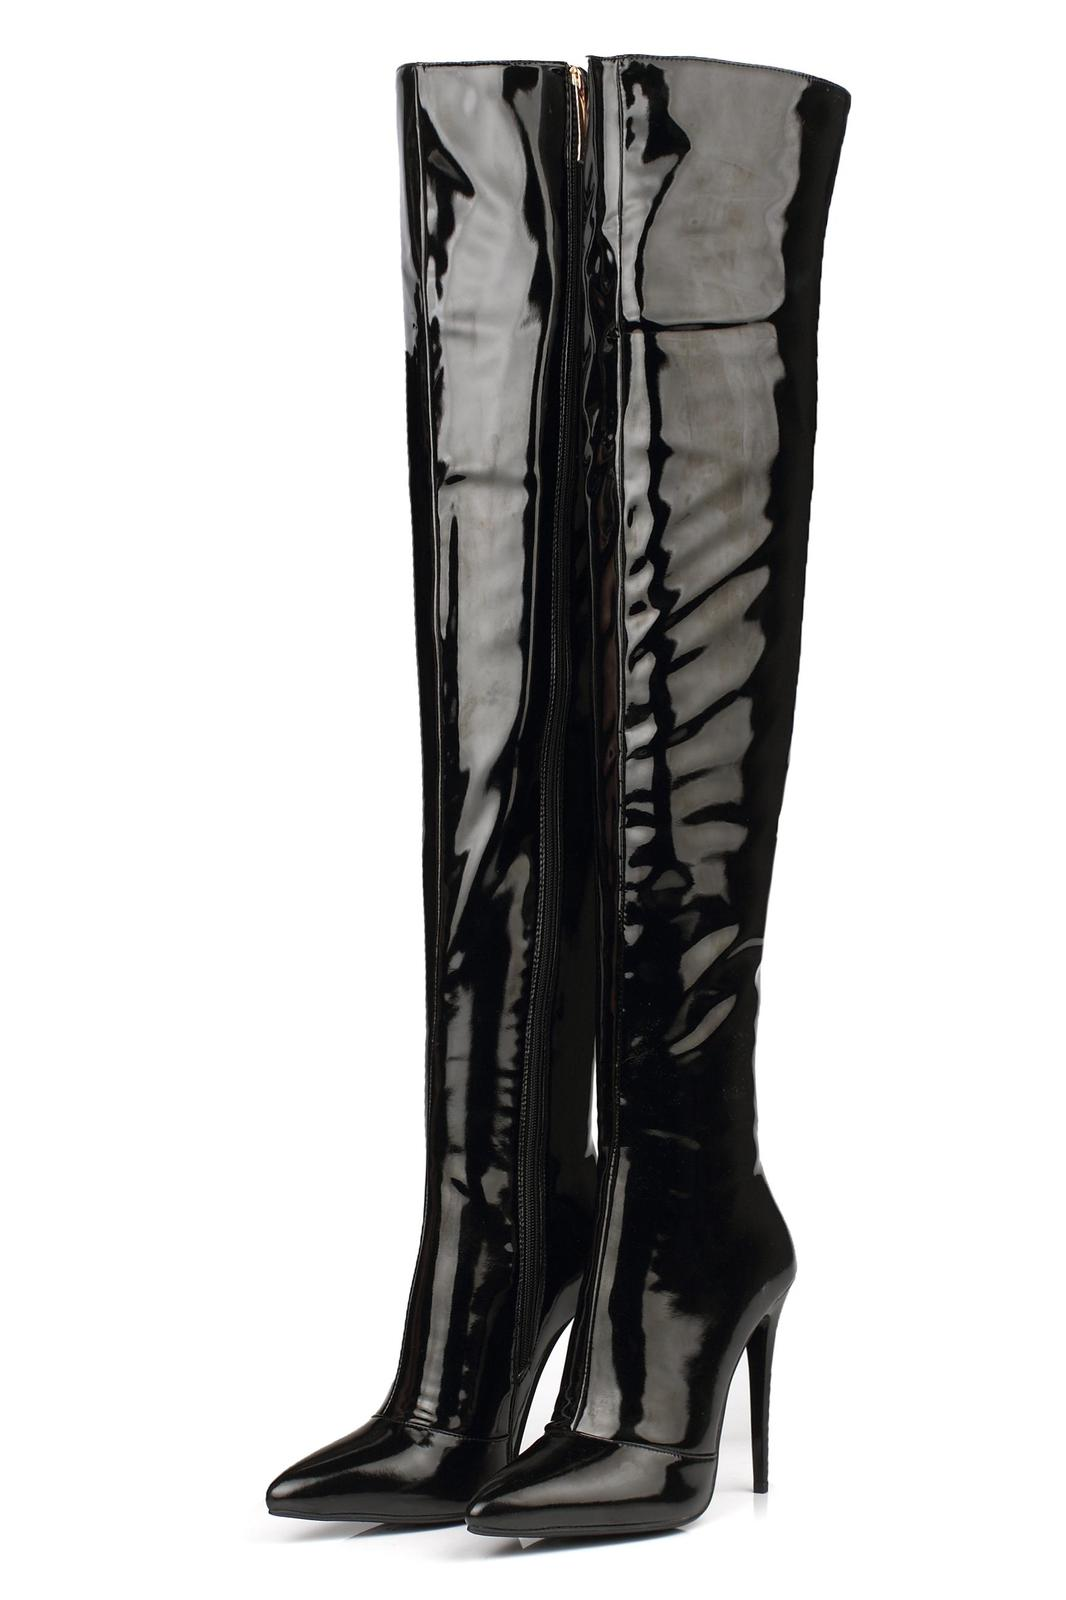 spring autumn winter Thigh-High boots for women over-the-knee patent leather plus size high heels 12cm white zipper red boots Stiletto heel